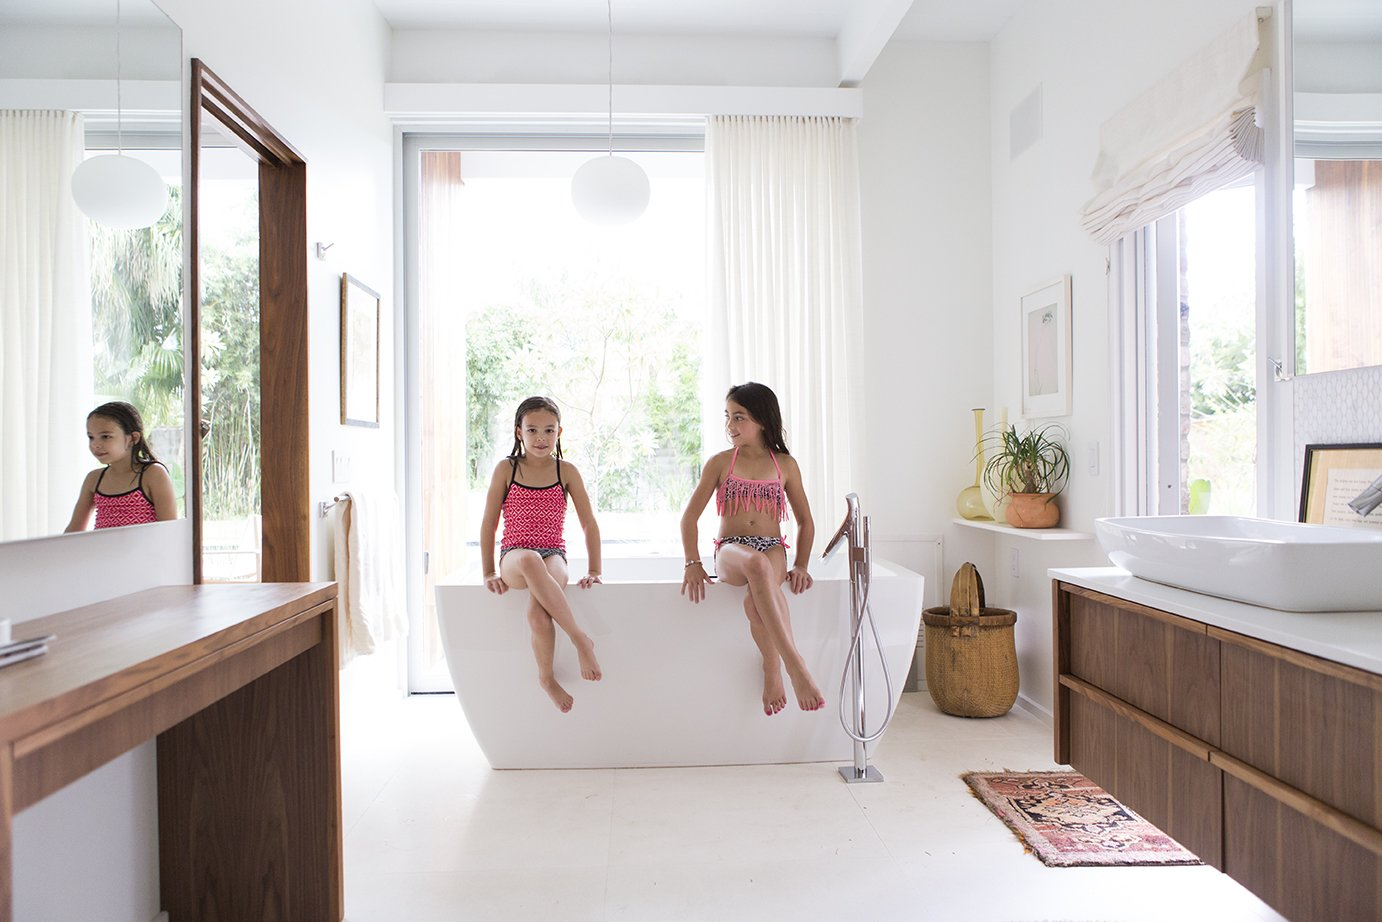 10 Ideas For Designing With a Modern Bathtub - Dwell